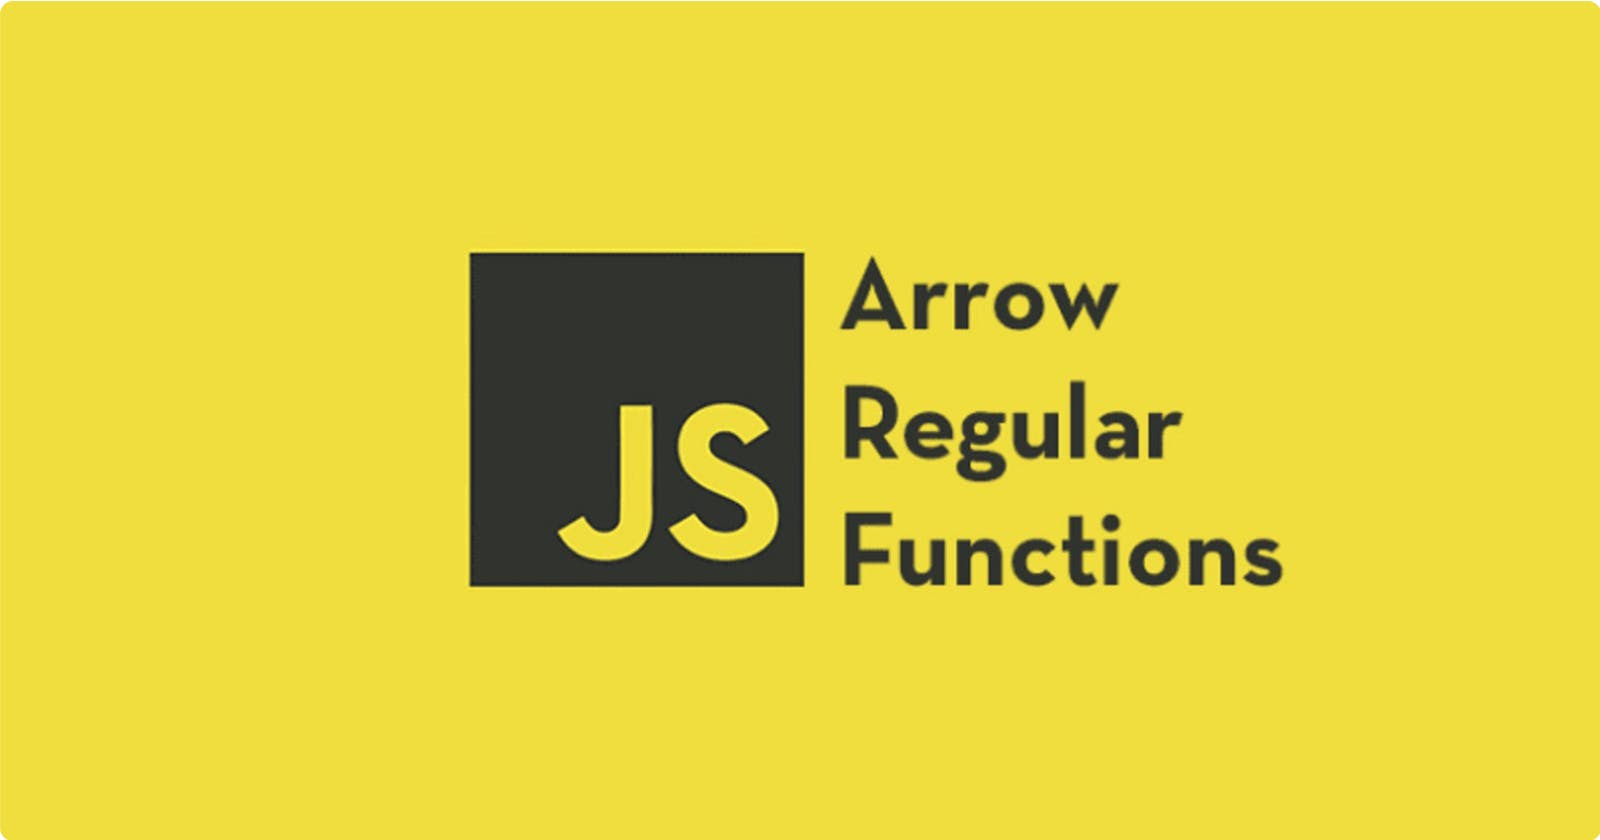 4 Important Differences Between Regular And Arrow Functions